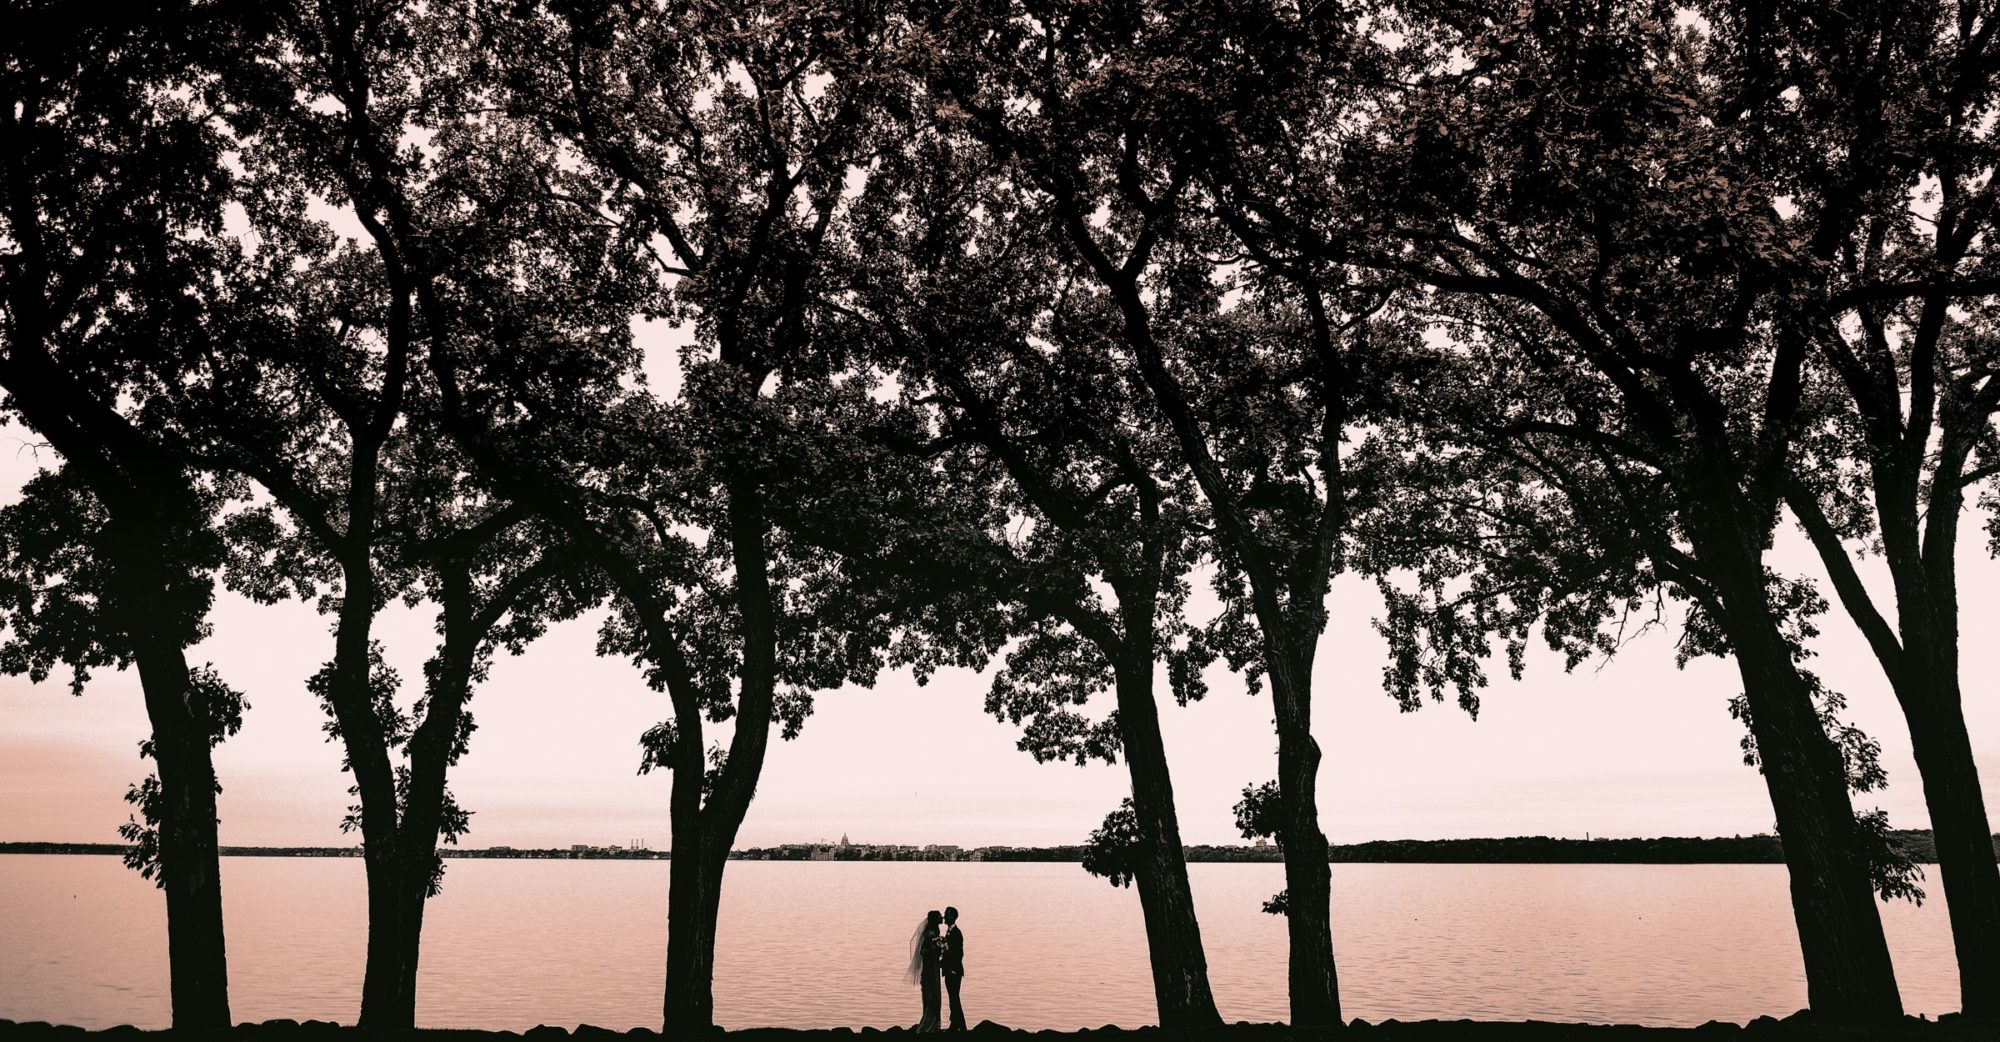 Madison-Wedding-Photographer-Abby-Chad-Lakeside-Silhouette-Under-Trees-Warm-1